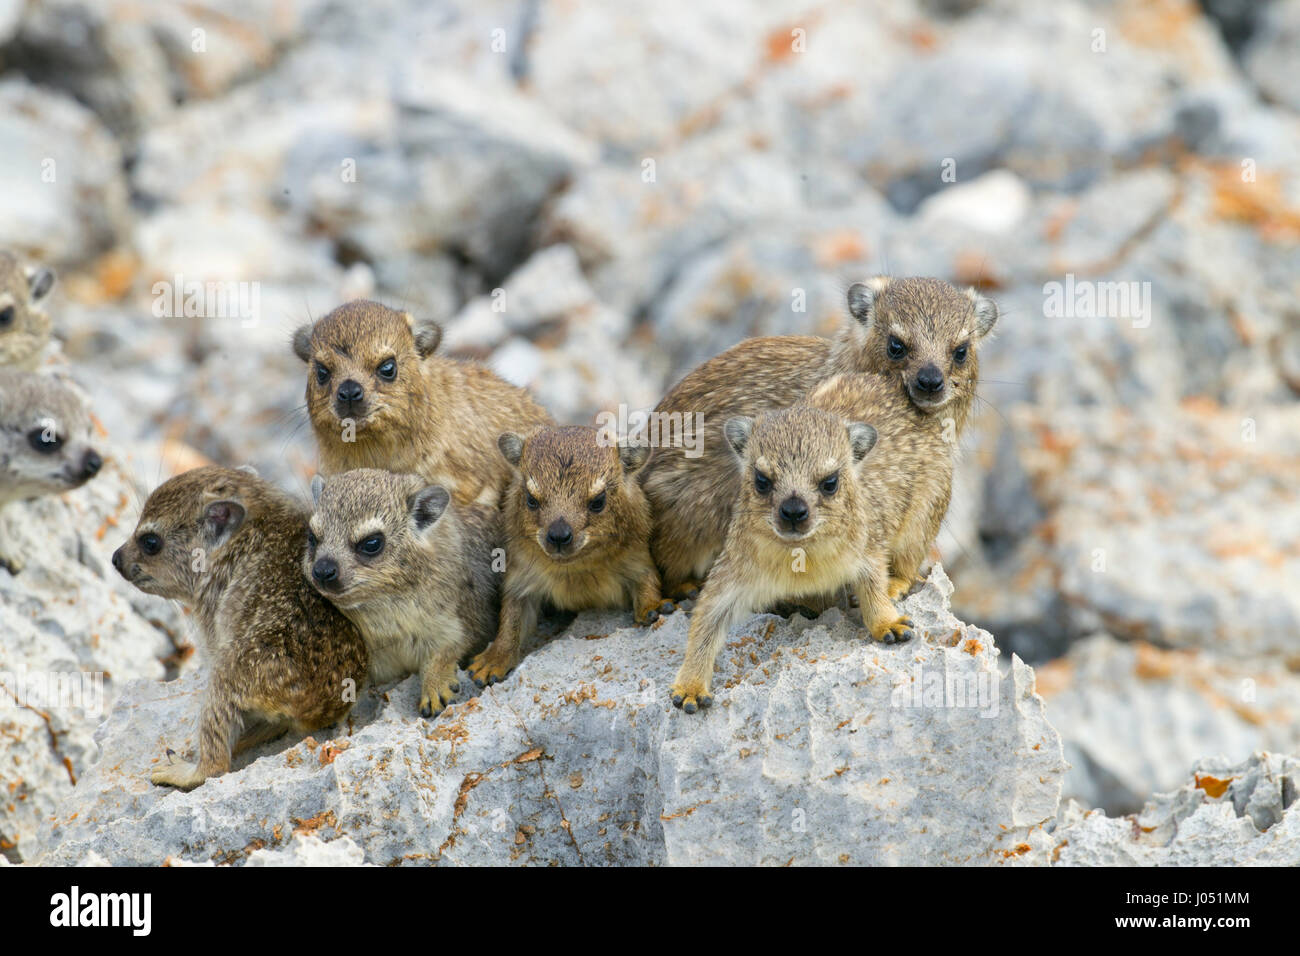 A group of young Rock hyrax Procavia capensis Namibia March Stock Photo